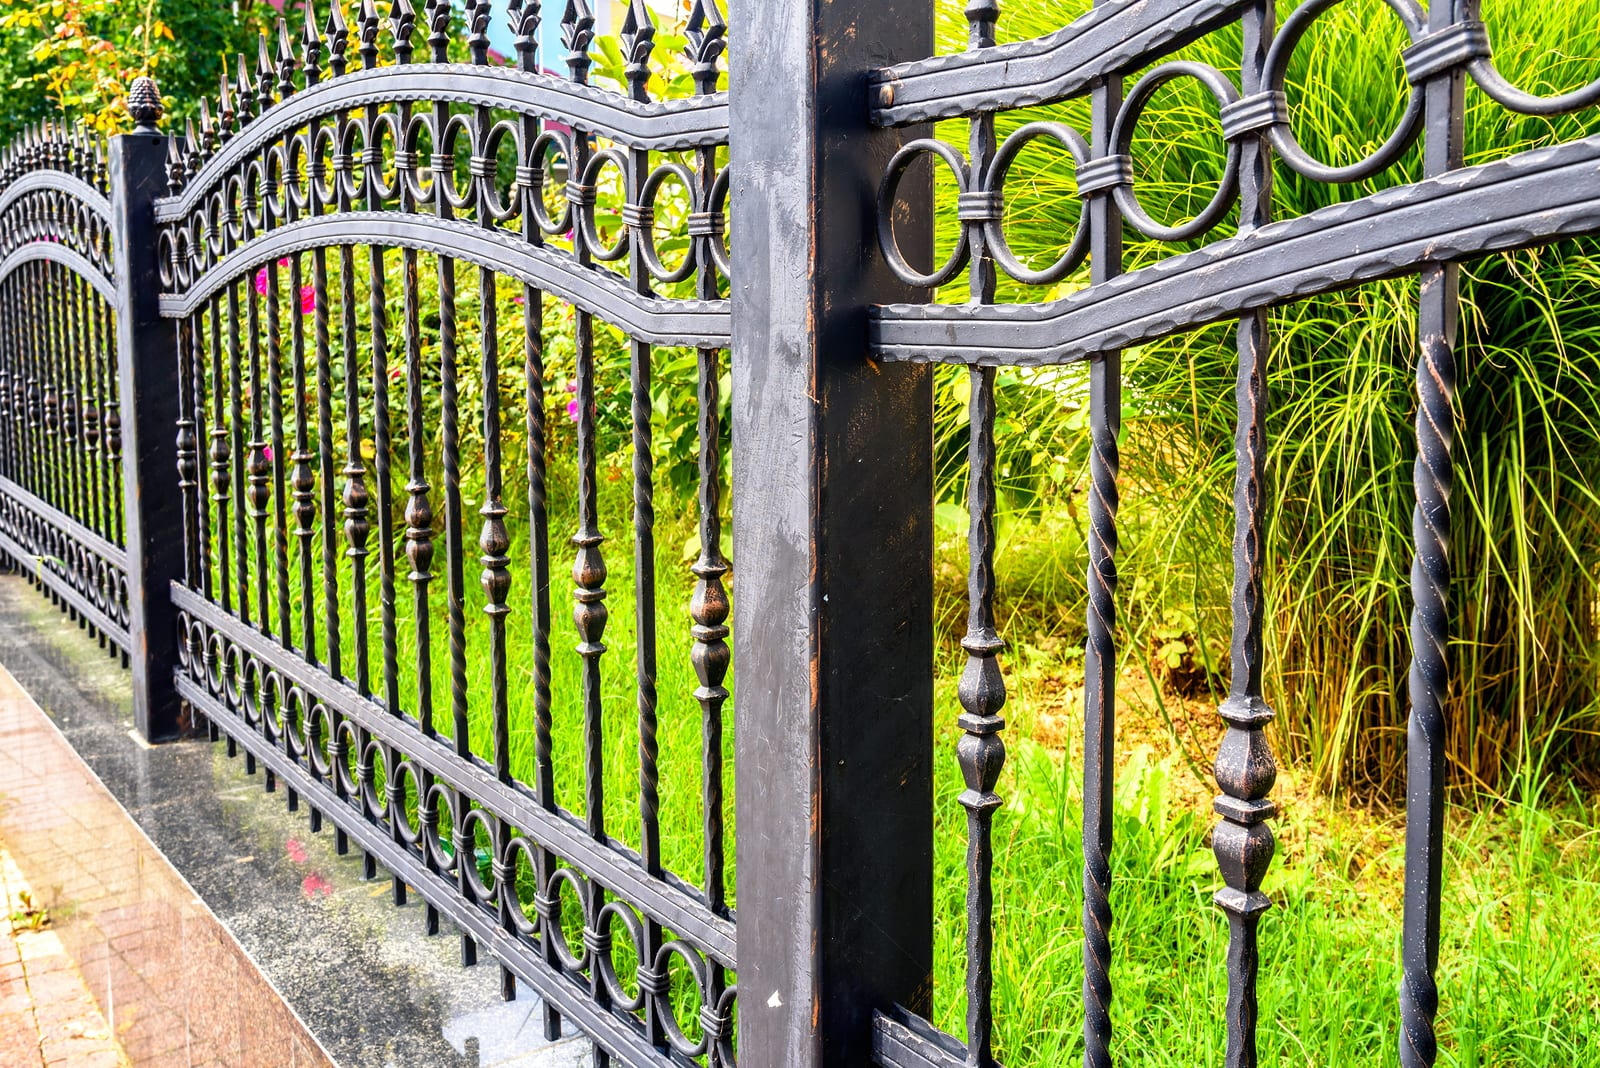 bigstock Wrought Iron Fence Black Meta 258218020